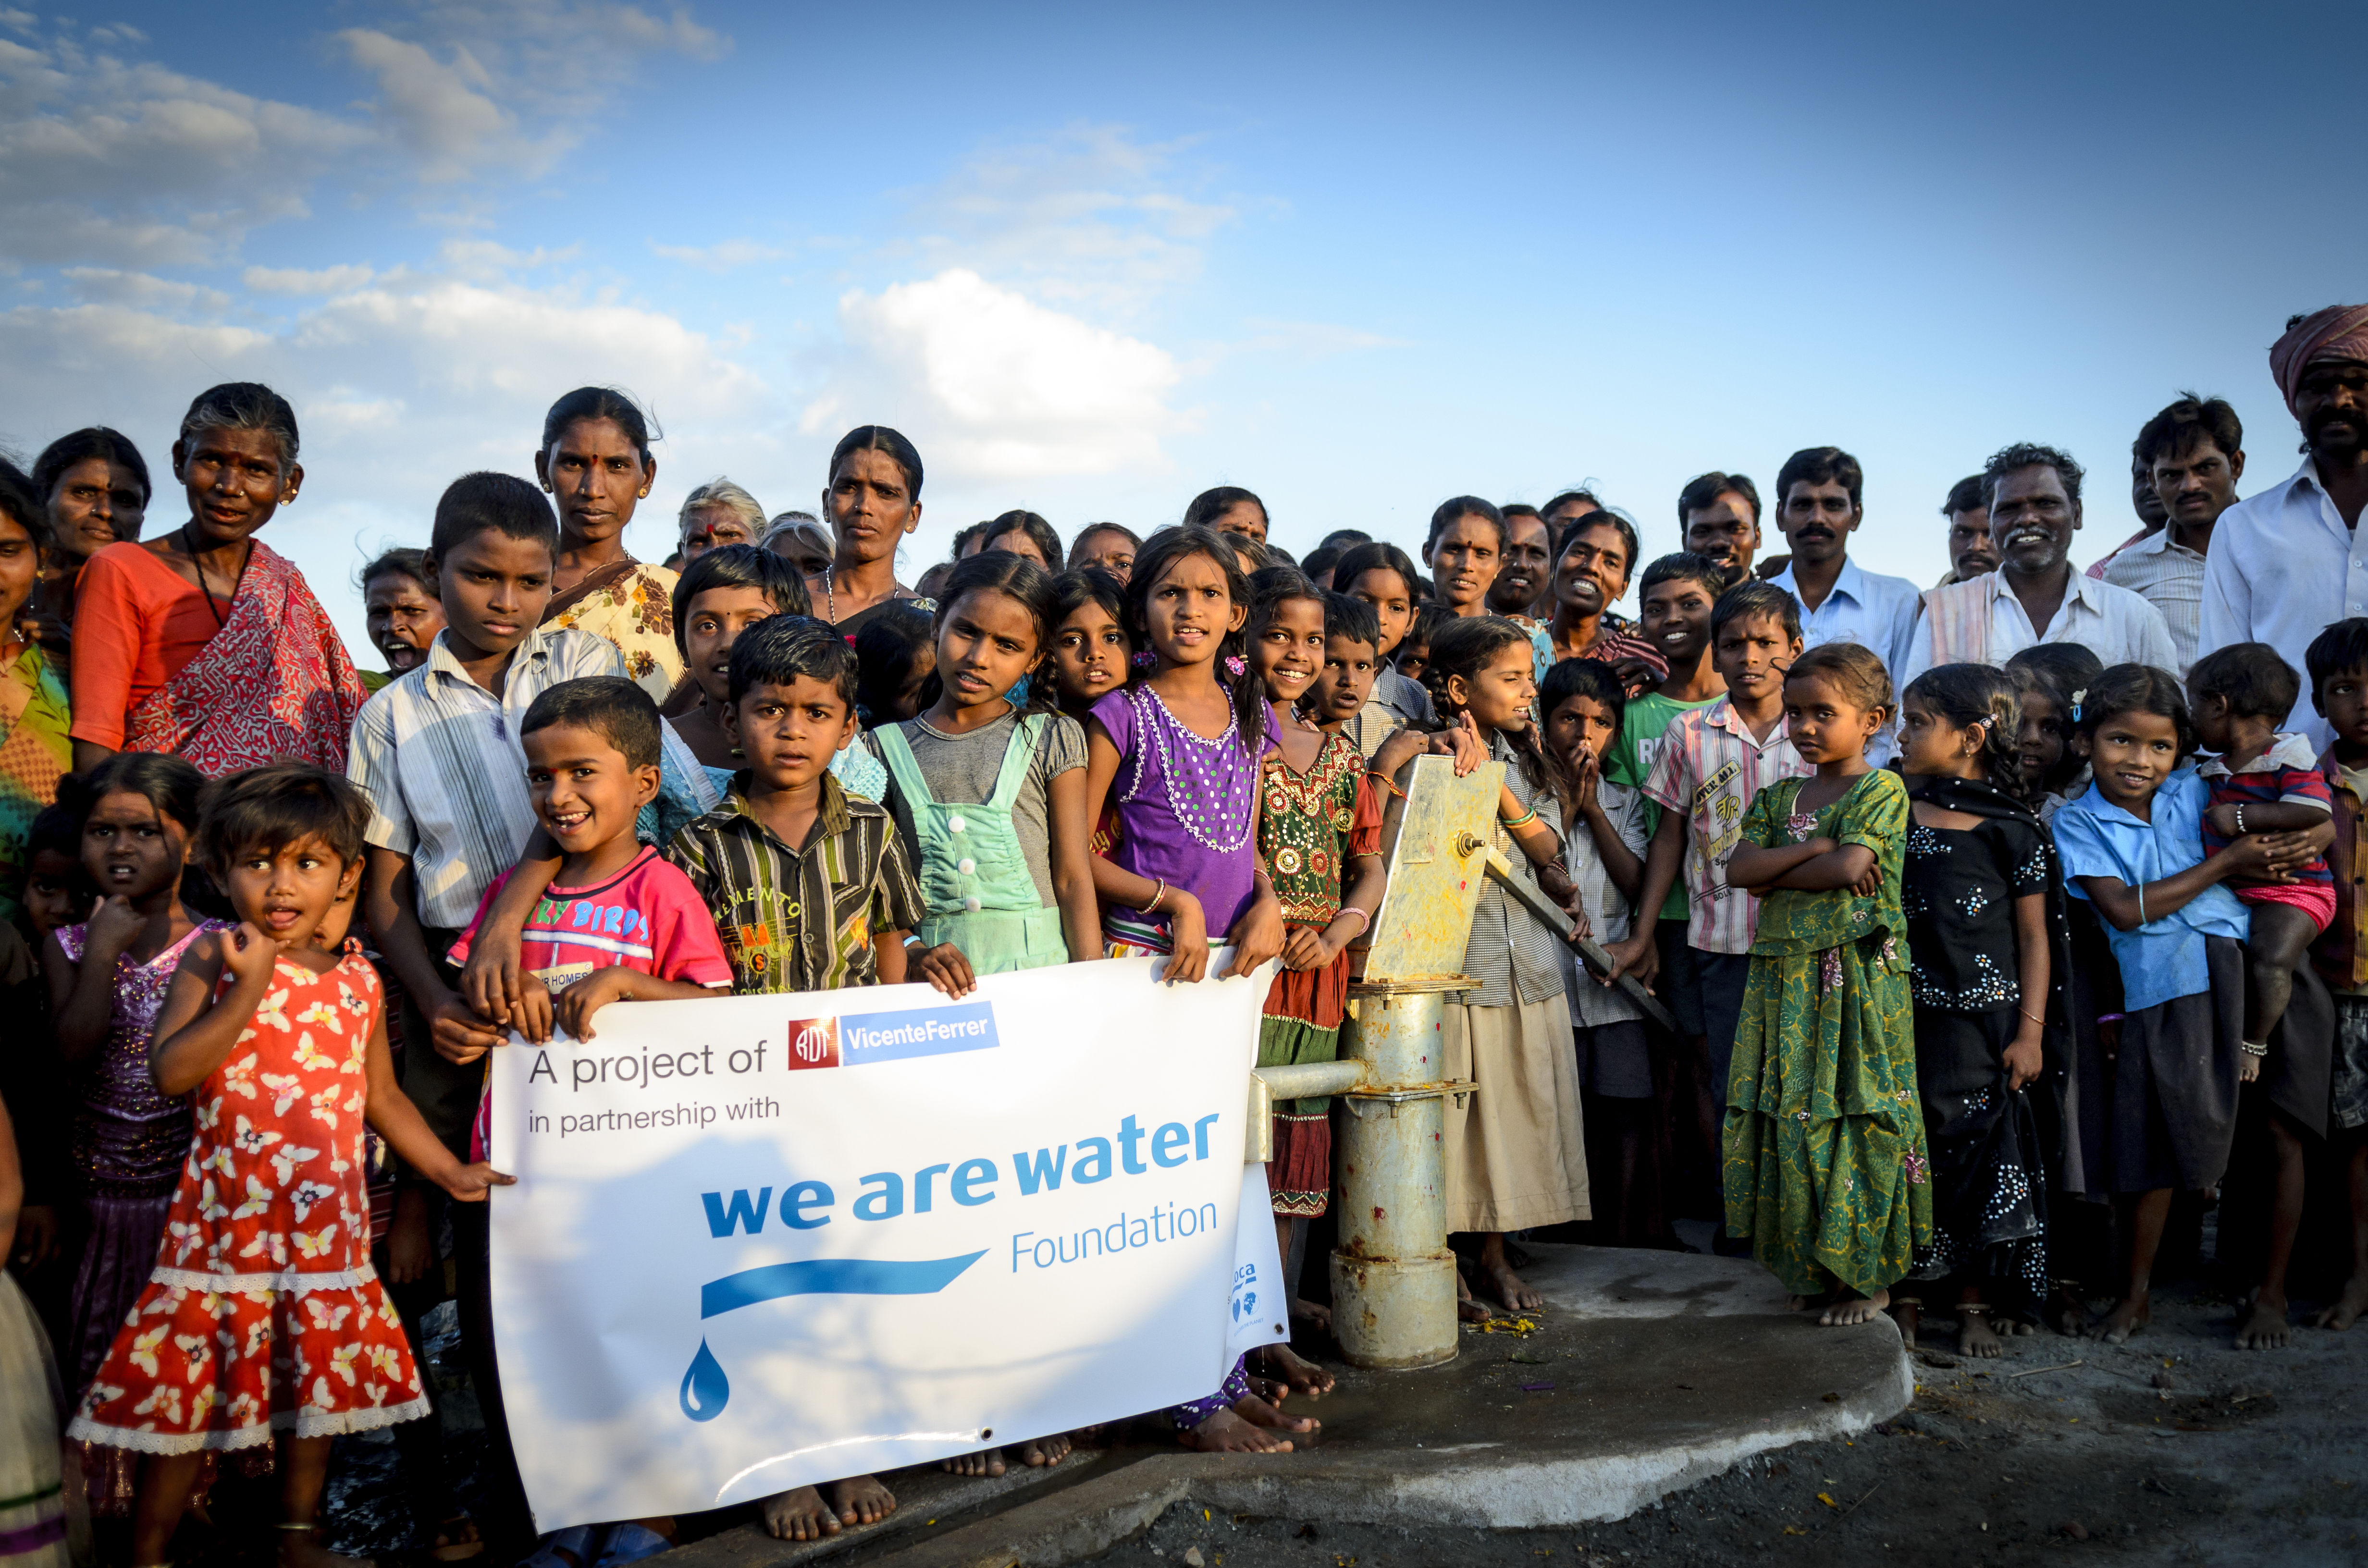 we are water foundation project in india image